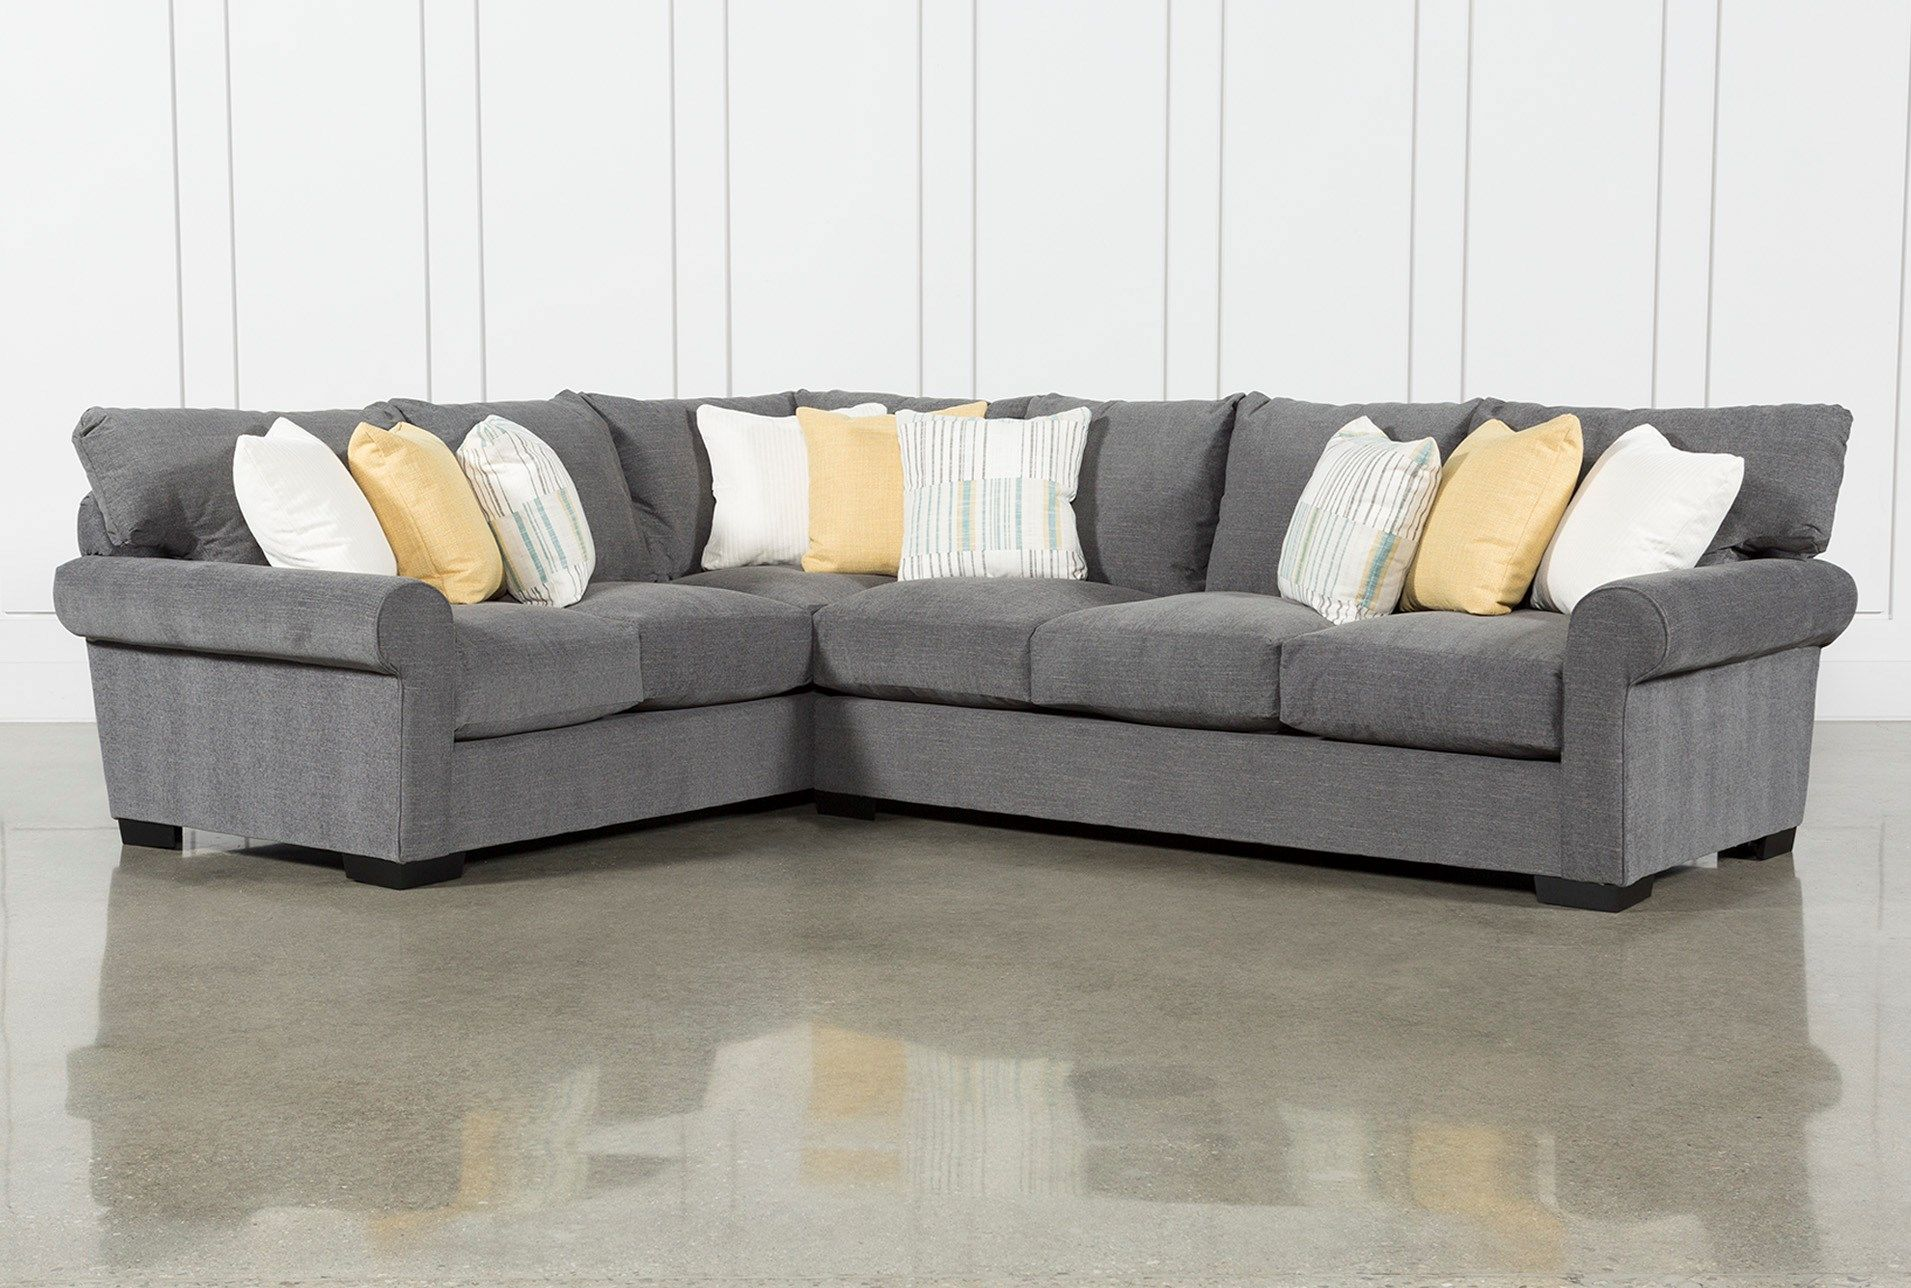 Aurora Ii 2 Piece Sectional With Right Arm Facing Sofa Grey Sectional Sofa Soft Seating Family Room Remodel